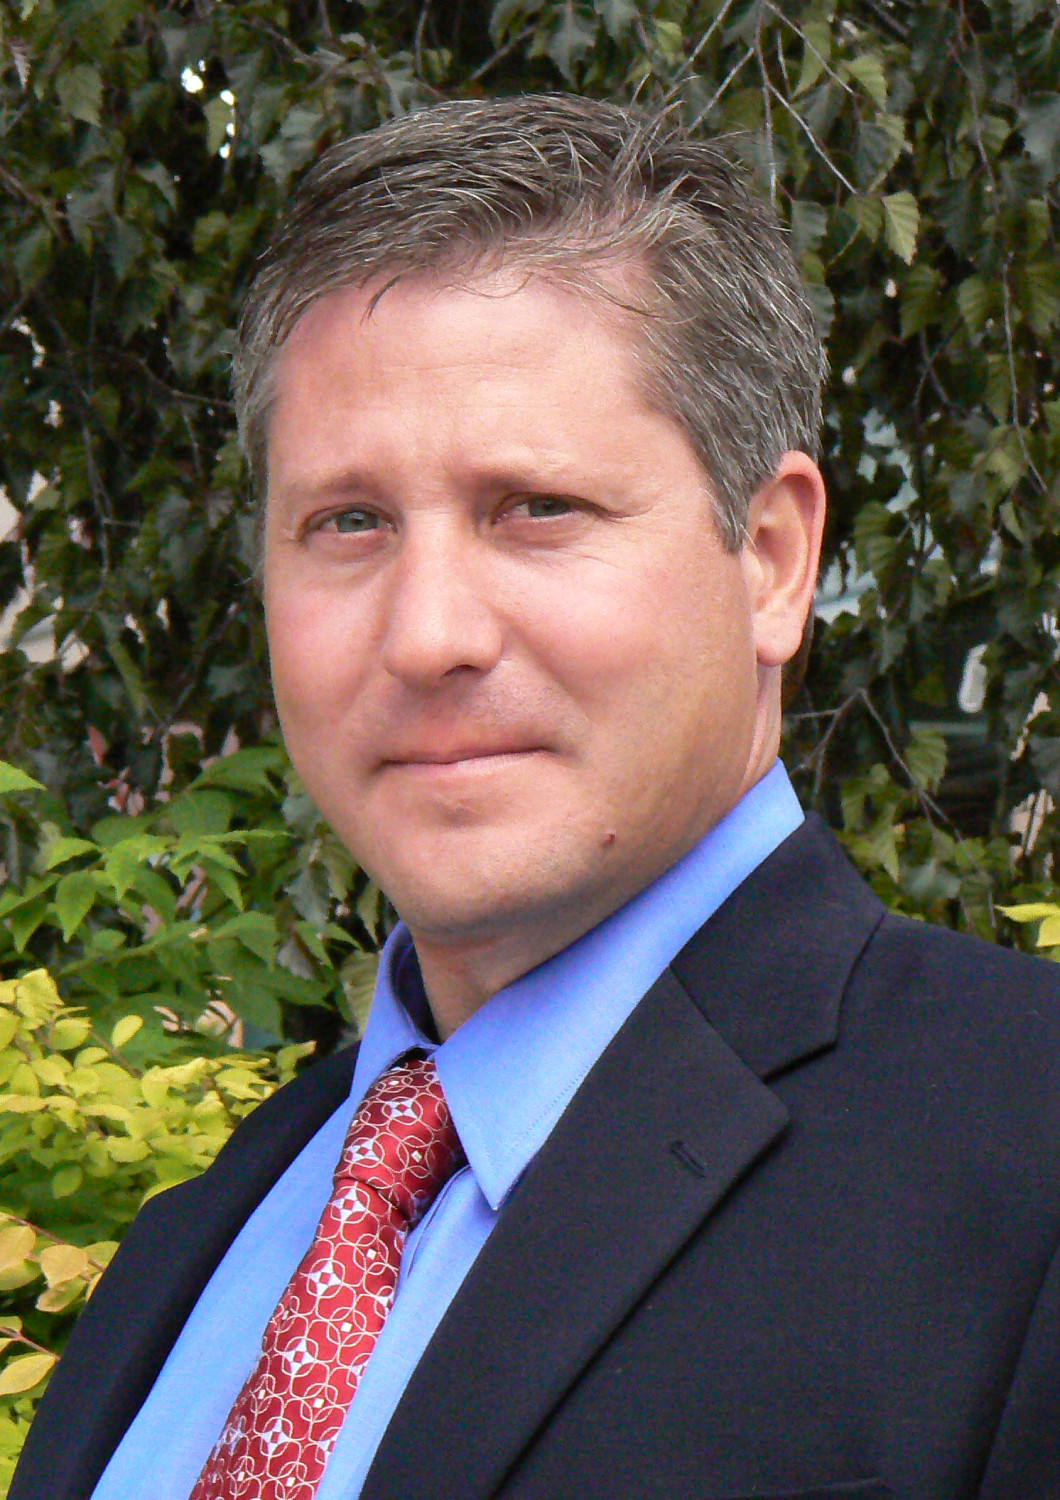 Todd Dawson Glazier, Attorney and President of Glazier Law Firm, P.C.